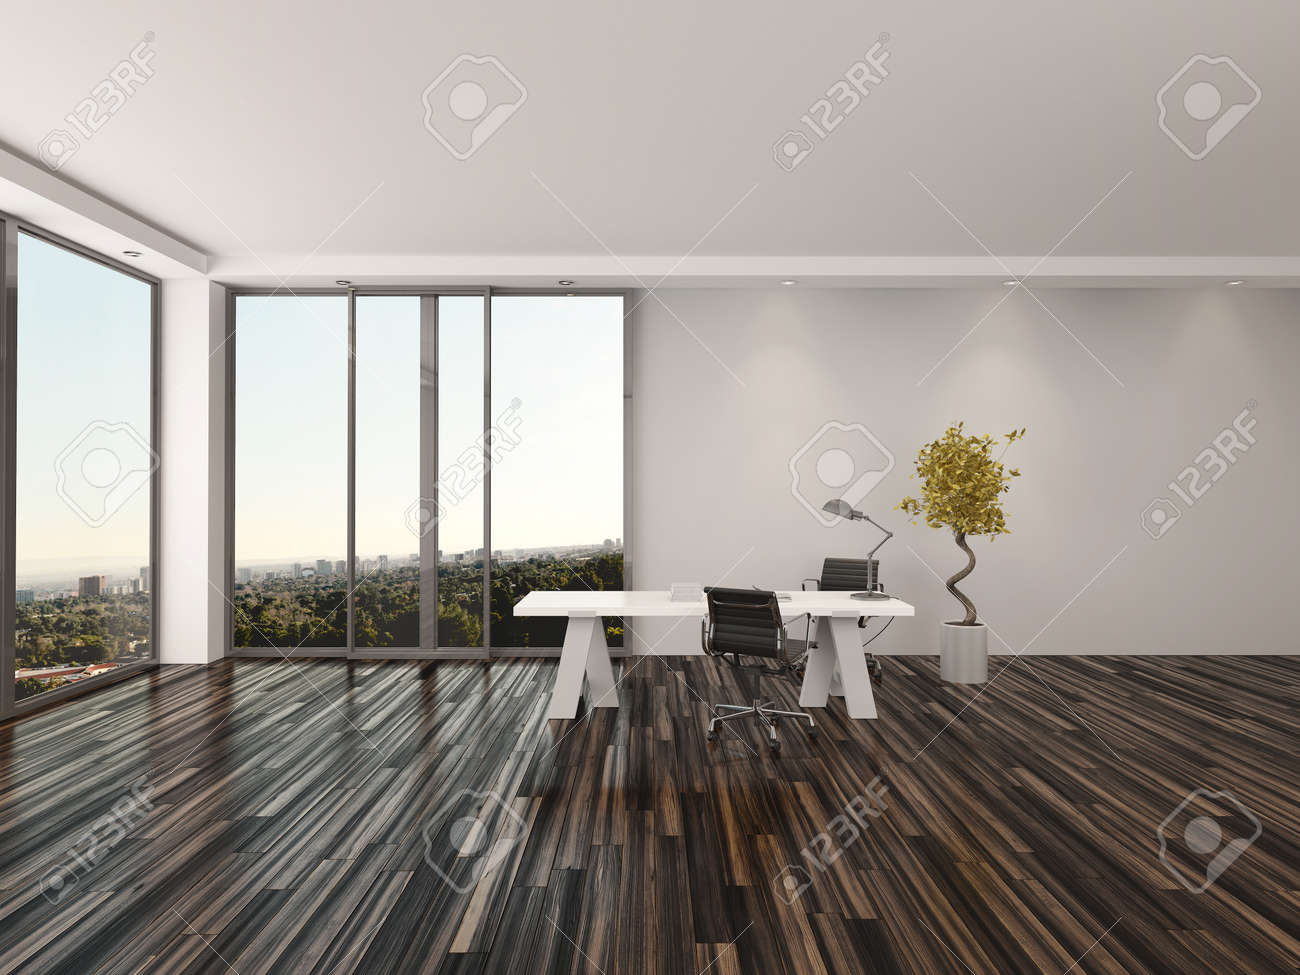 Modern Home Office Interior Design With Two Office Chairs On Stock Photo Picture And Royalty Free Image Image 30526379